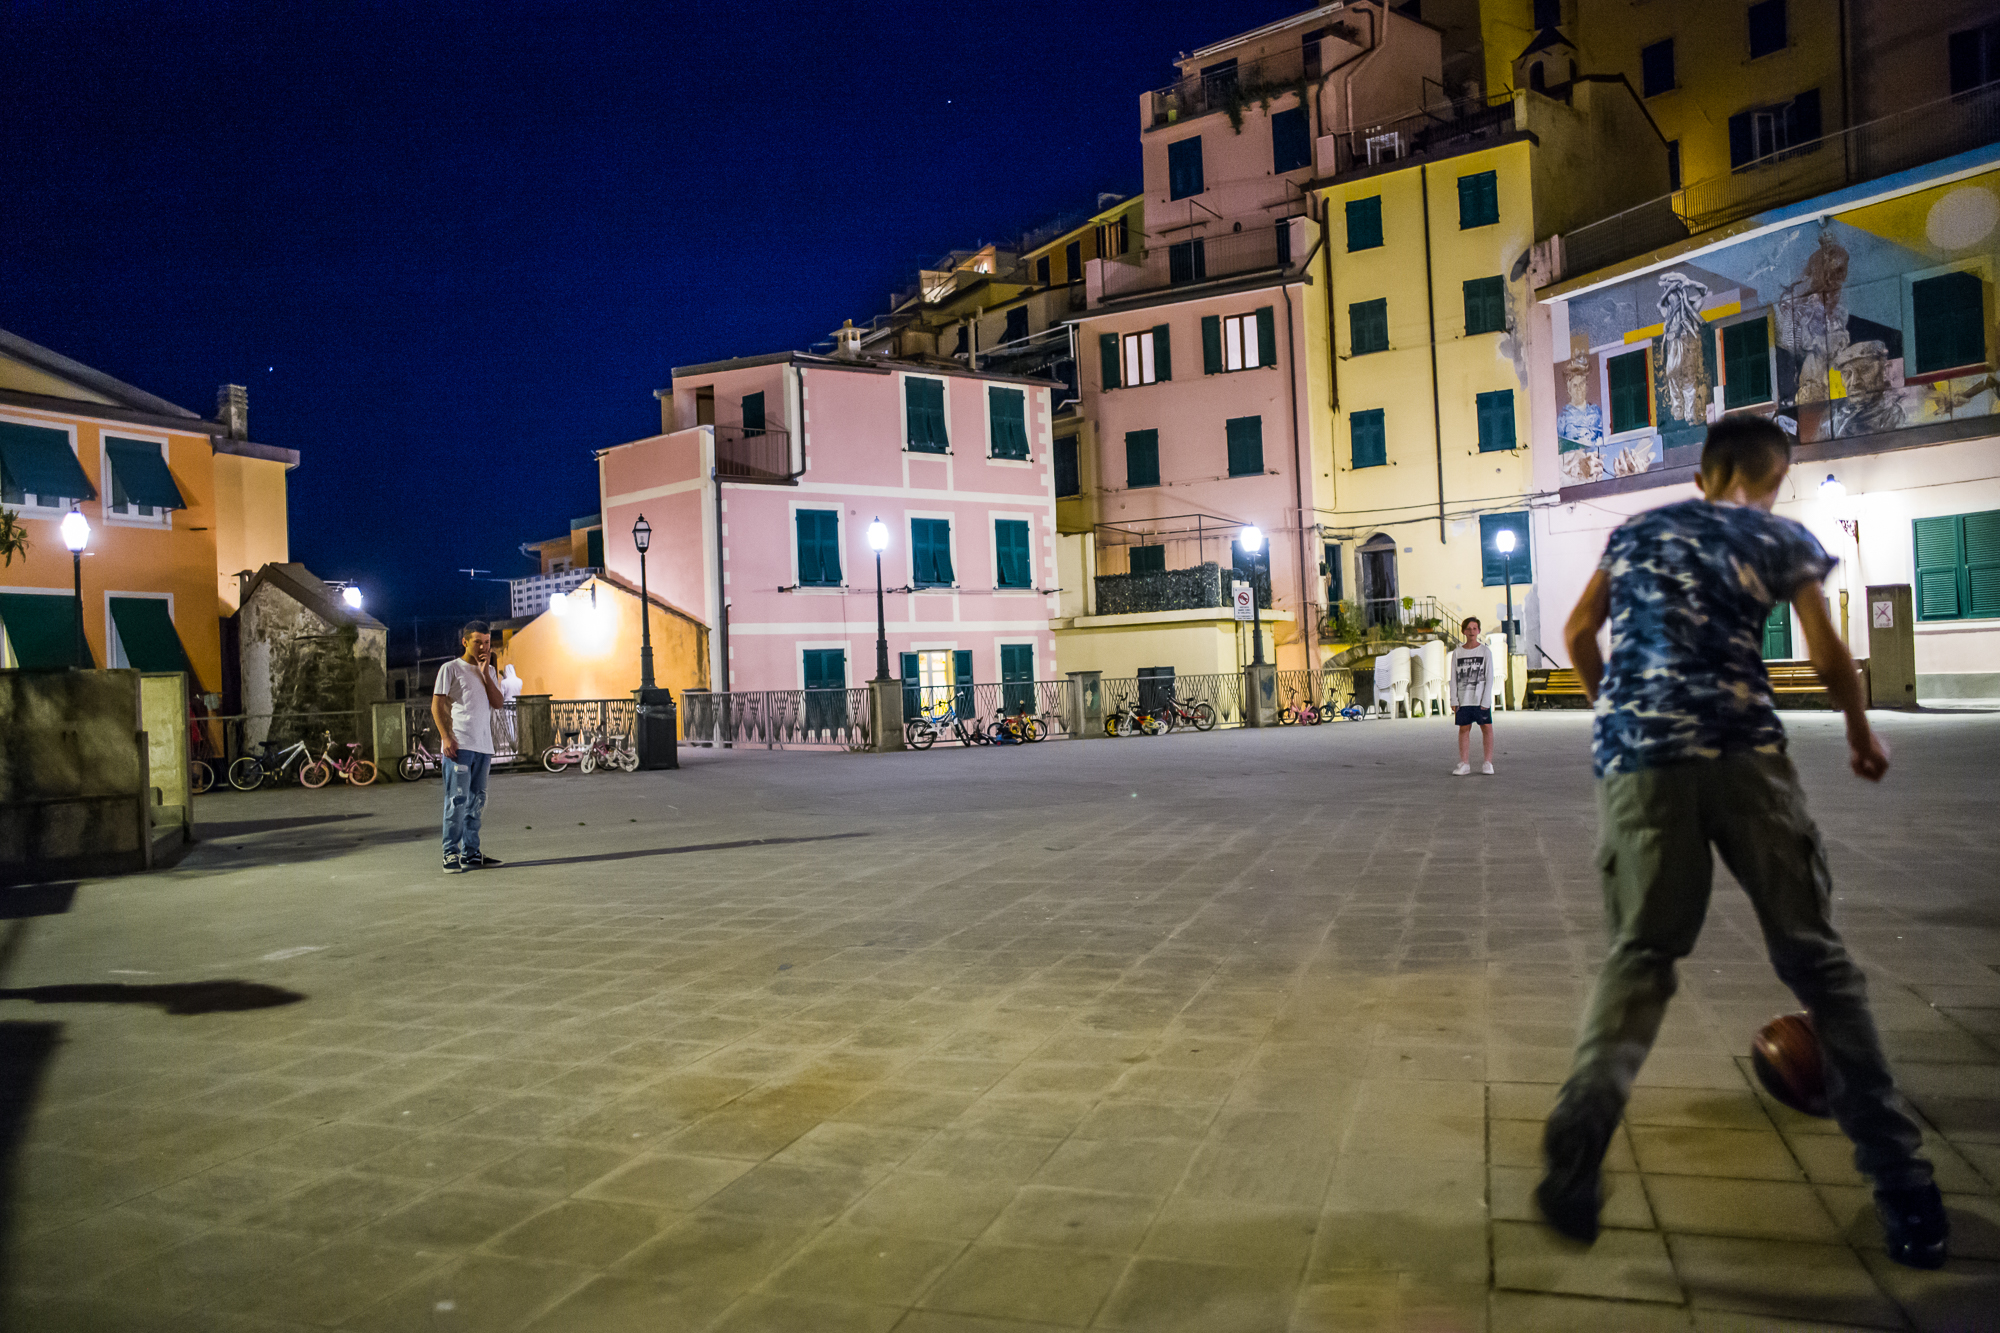 Playing Soccer under the stars in Manarola